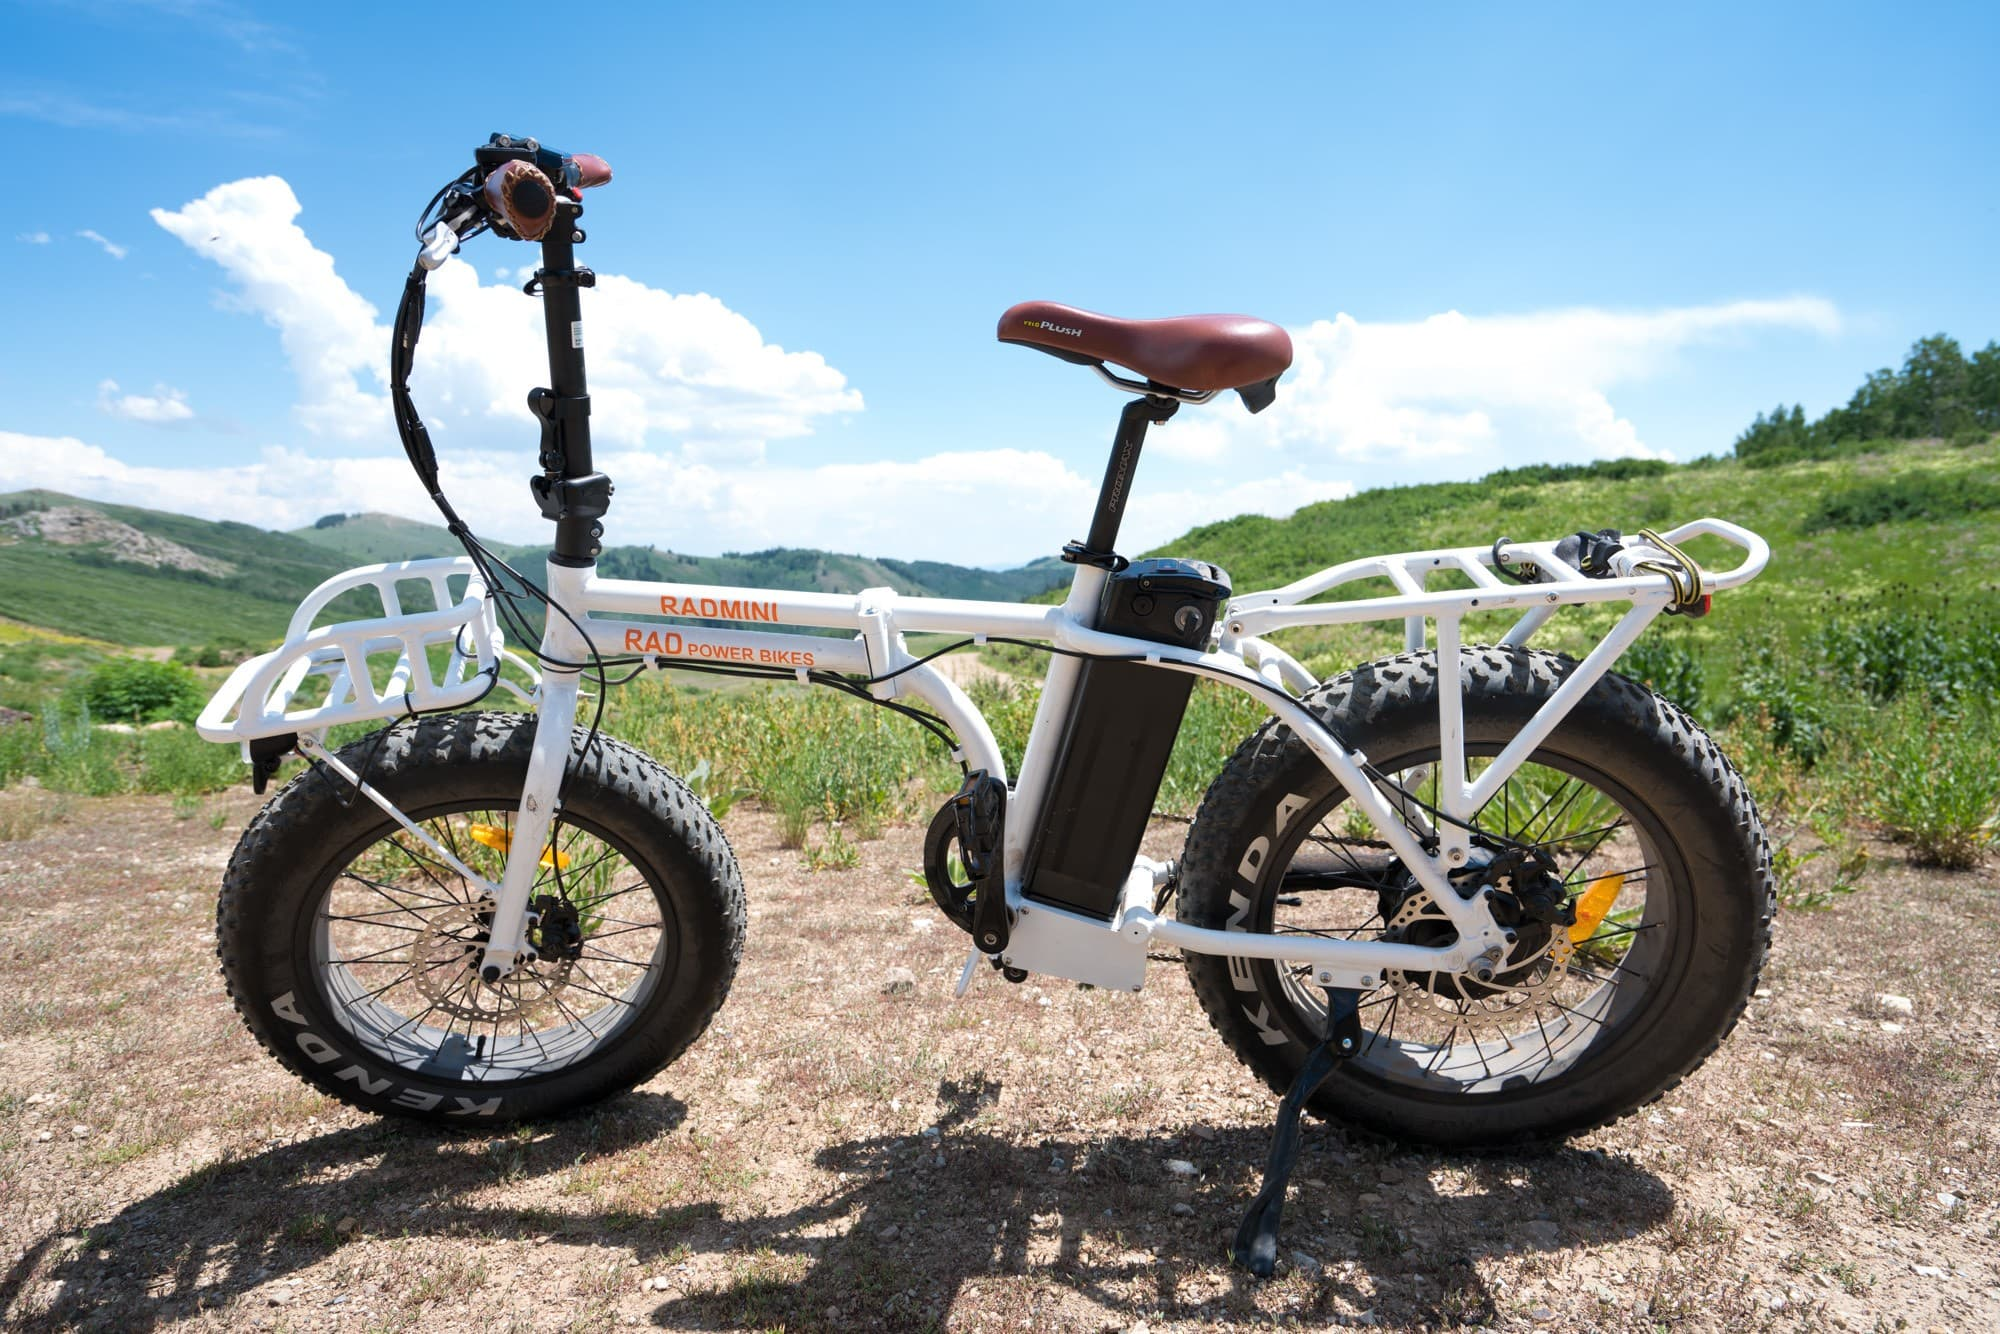 Rad Power Bikes are the ultimate commuter & off-road electric bike. Read my review of the fat-tired RadMini & RadRover ebike & learn how pedal assist works.